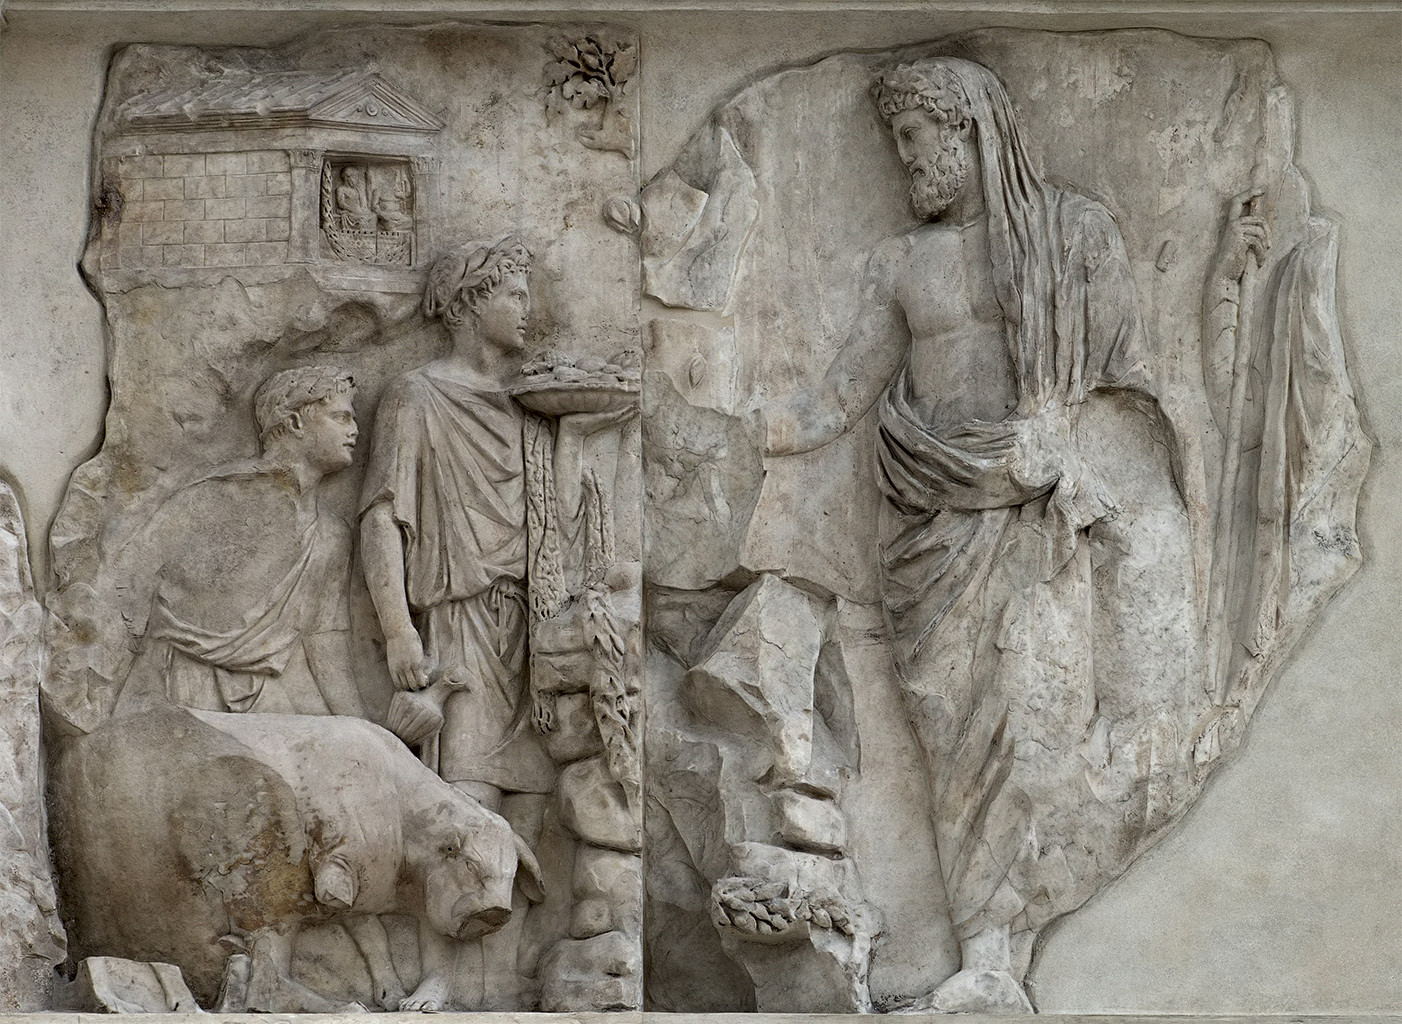 Aeneas sacrificing to the Penates. Right part of the west facade of the Ara Pacis Augustae (upper panel). Rome, Museum of the Altar of Augustan Peace (Ara Pacis Augustae)